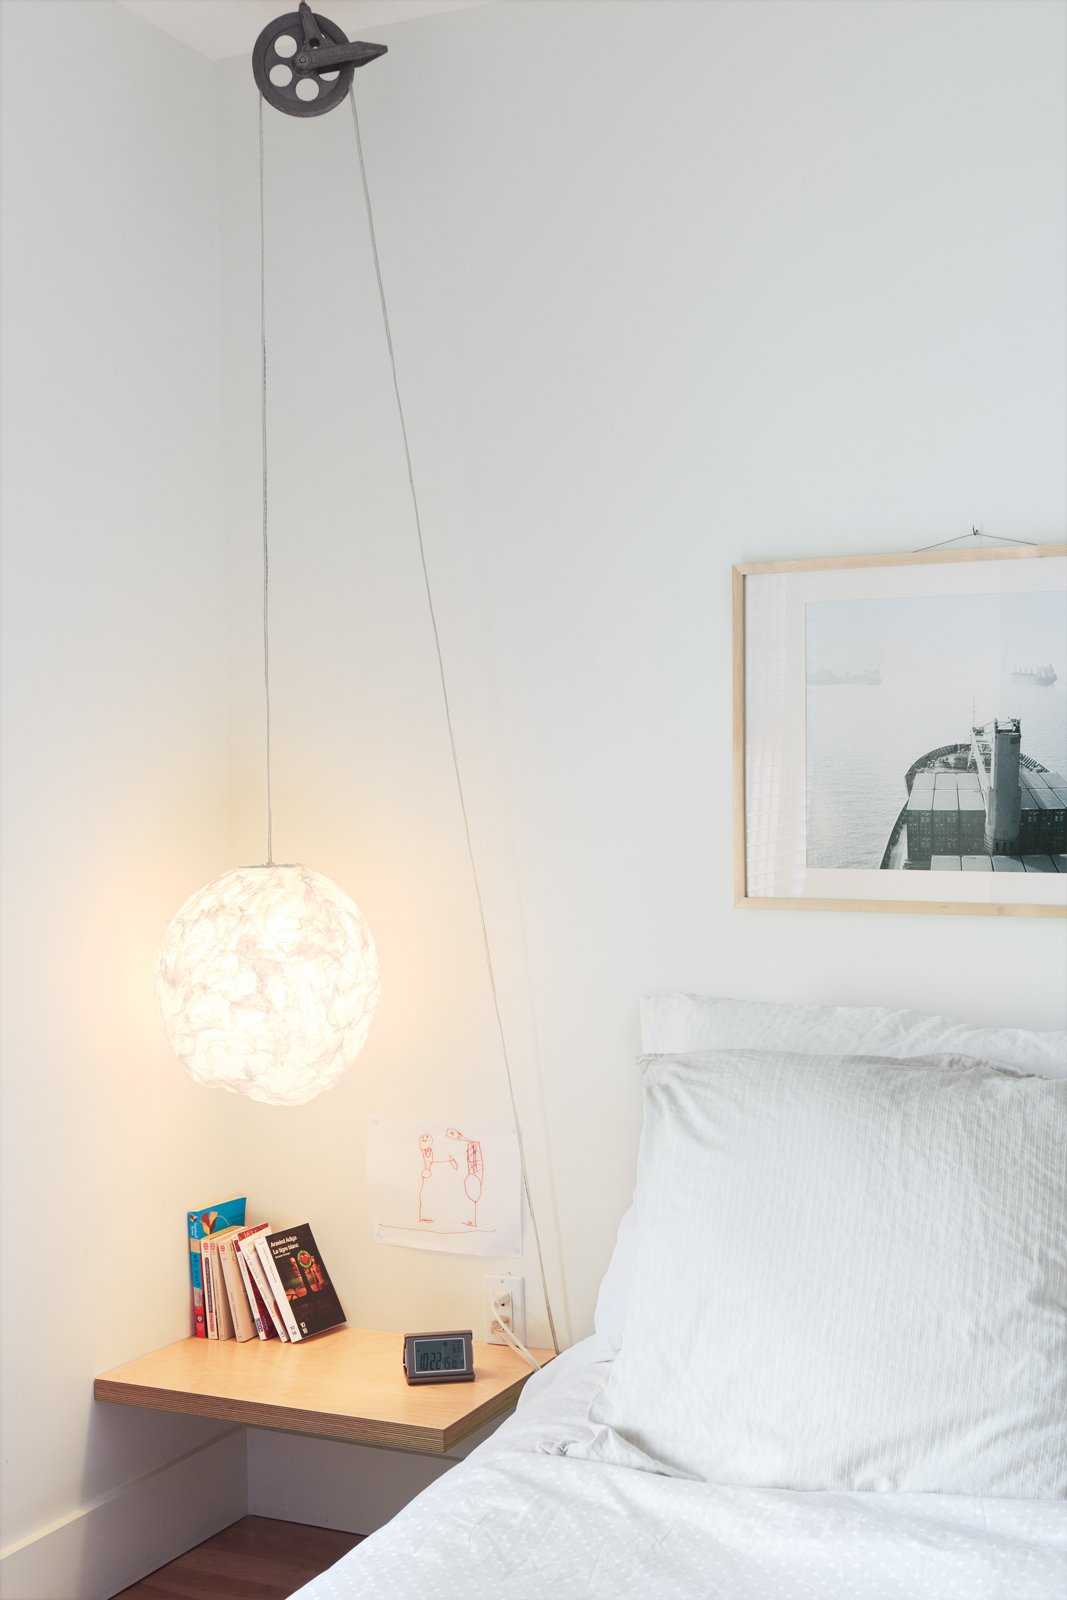 """Reel Simple  For a simple, low-cost bedside reading light with a dash of industrial style, Bernier ran a standard-issue cord set through a vintage clothesline pulley, which he picked up at a flea market, on Thibault's side of the bed. """"If she ever wants it to be higher, she can easily adjust it,"""" he says.  Bedrooms by Dwell from Separate Boîte Equal"""